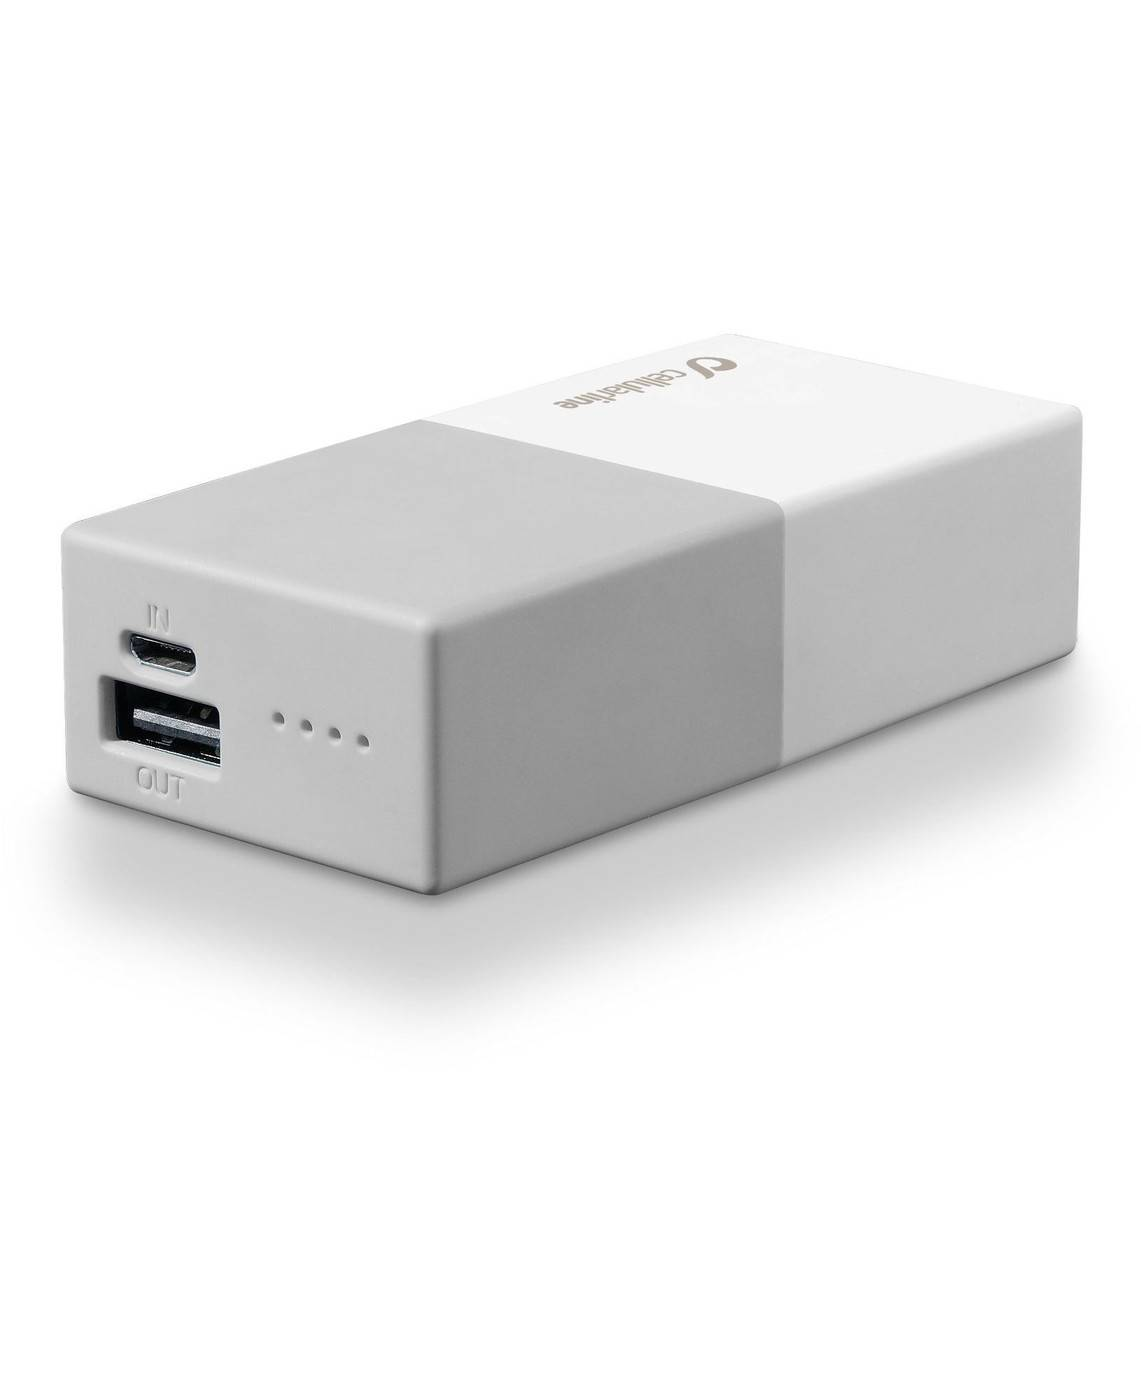 CELLULARLINE SpA Powerbank 5000 Universal Cellularline 1 Battery Charger White